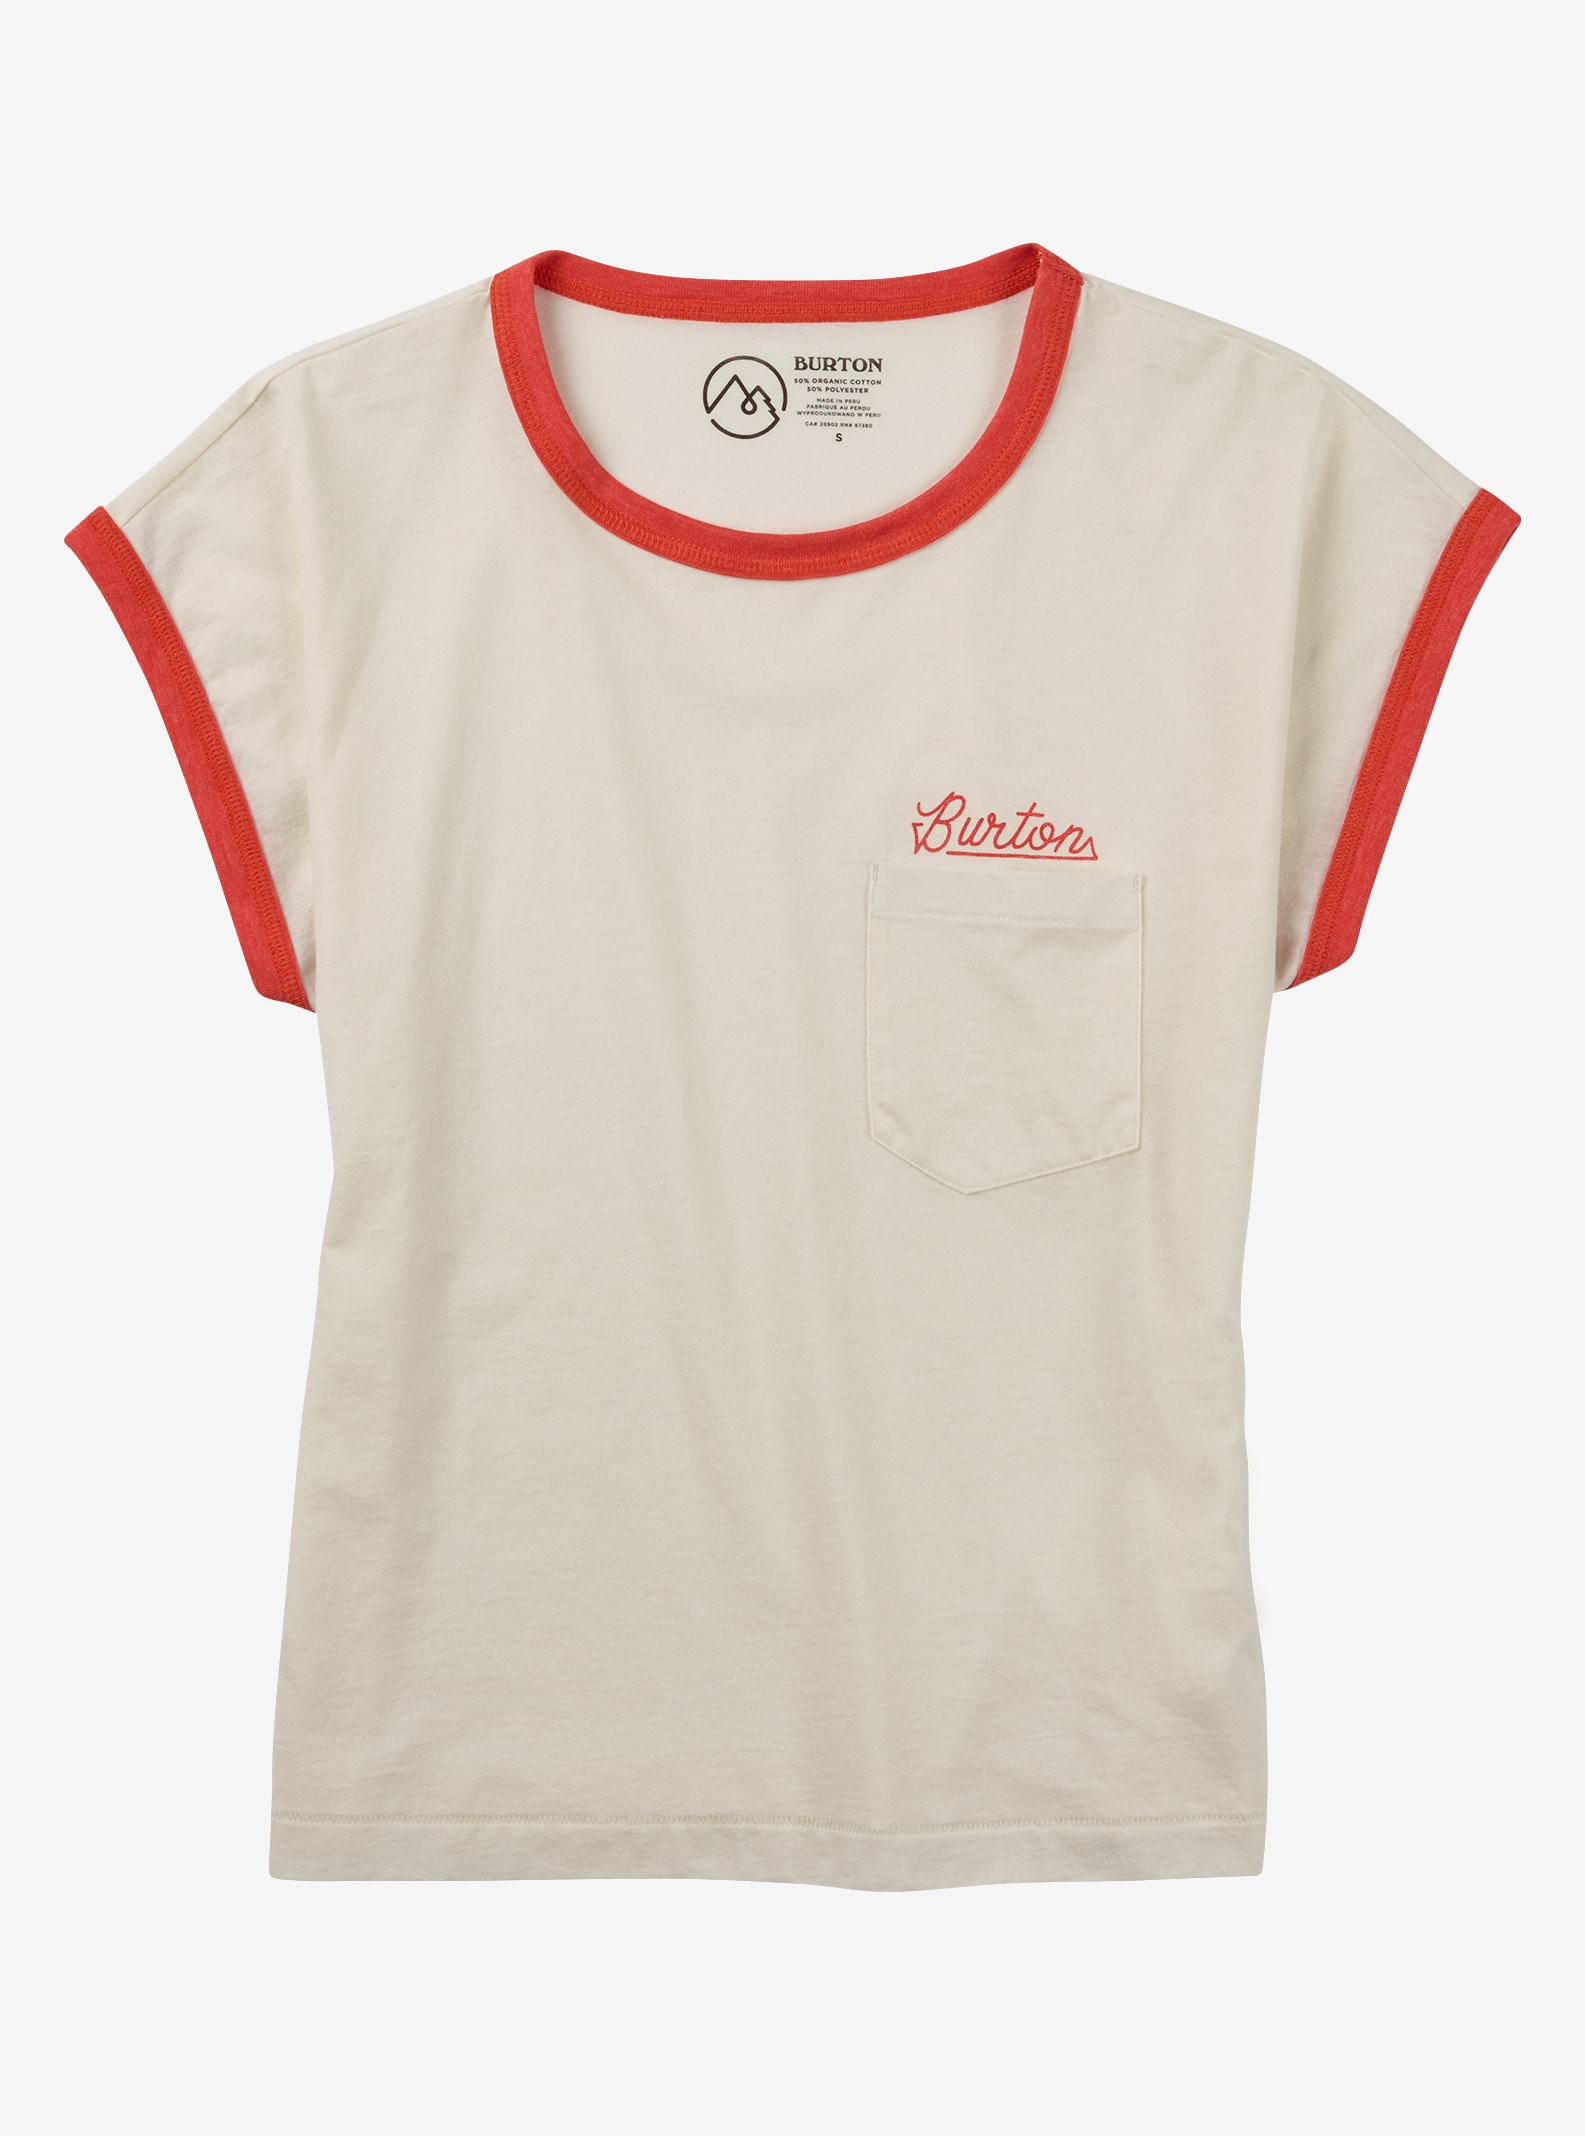 Burton Embrace the Surreal Short Sleeve Tee shown in Canvas Heather